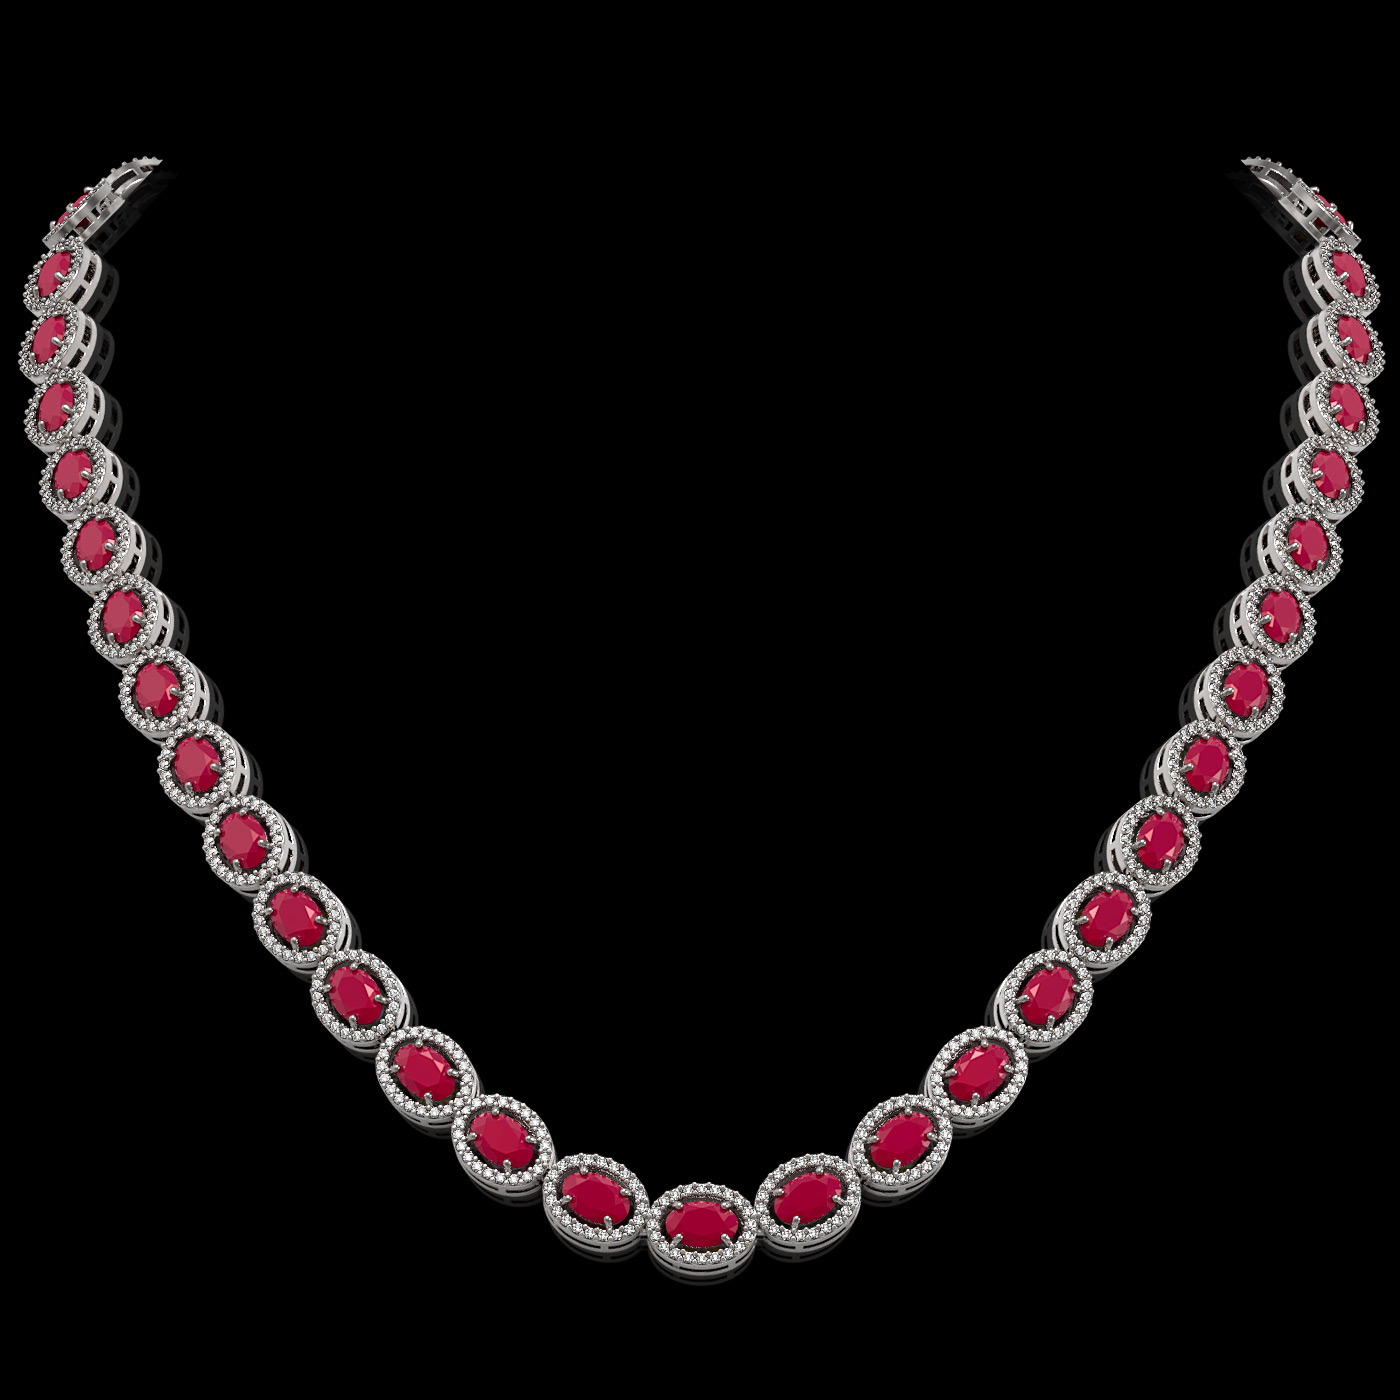 34.11 Ctw Ruby & Diamond Necklace White Gold